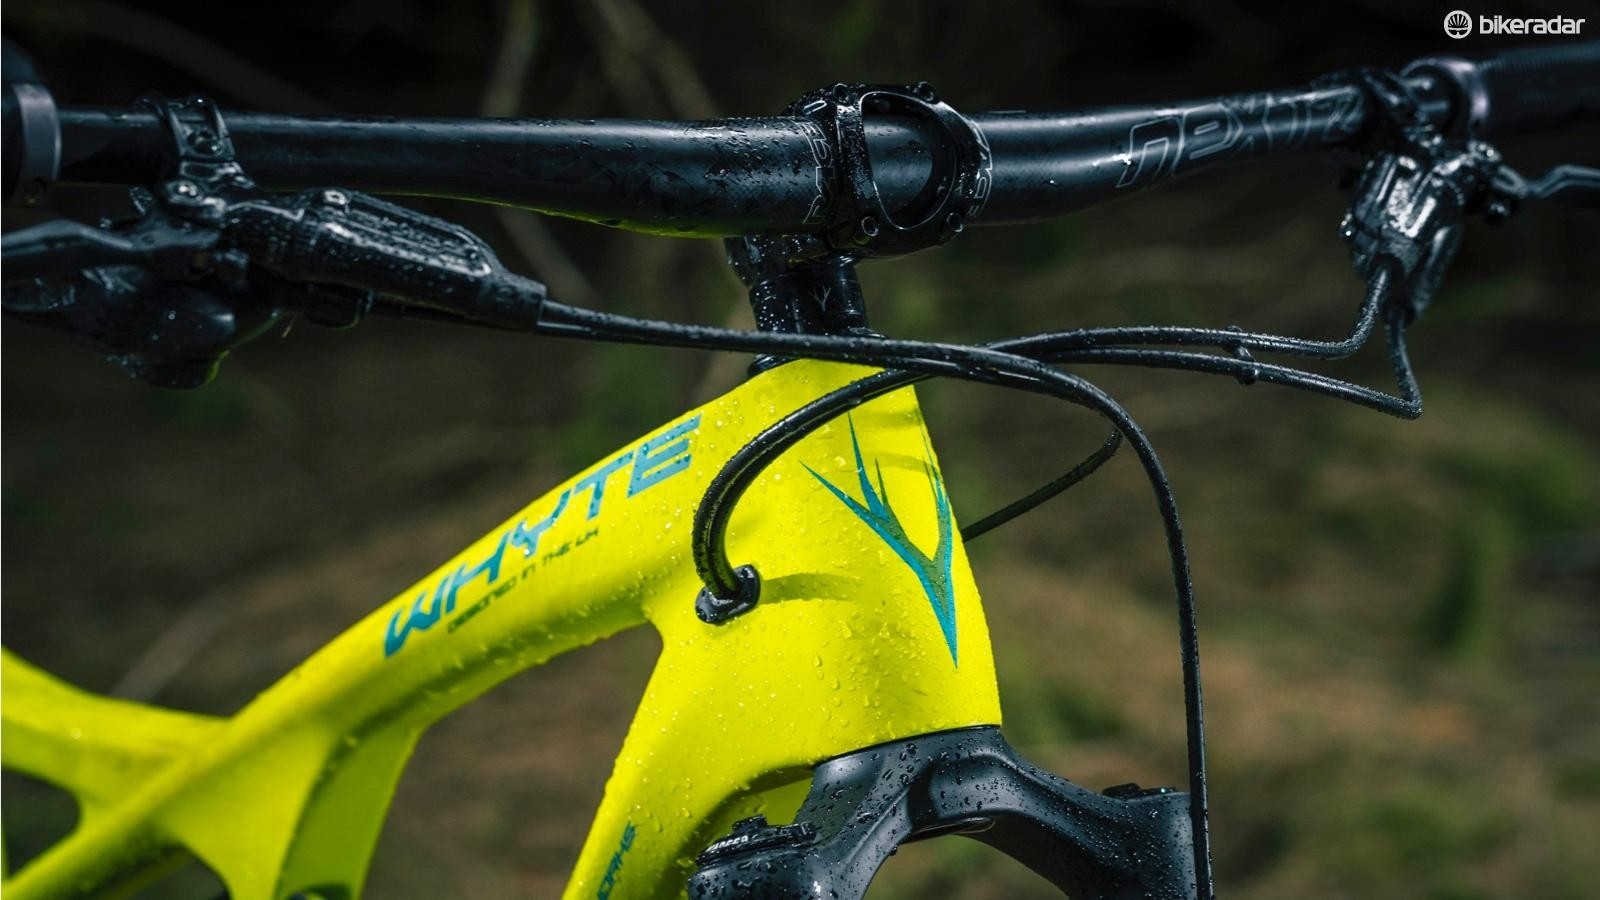 Fairly short stems and properly wide bars encourage super confident cornering